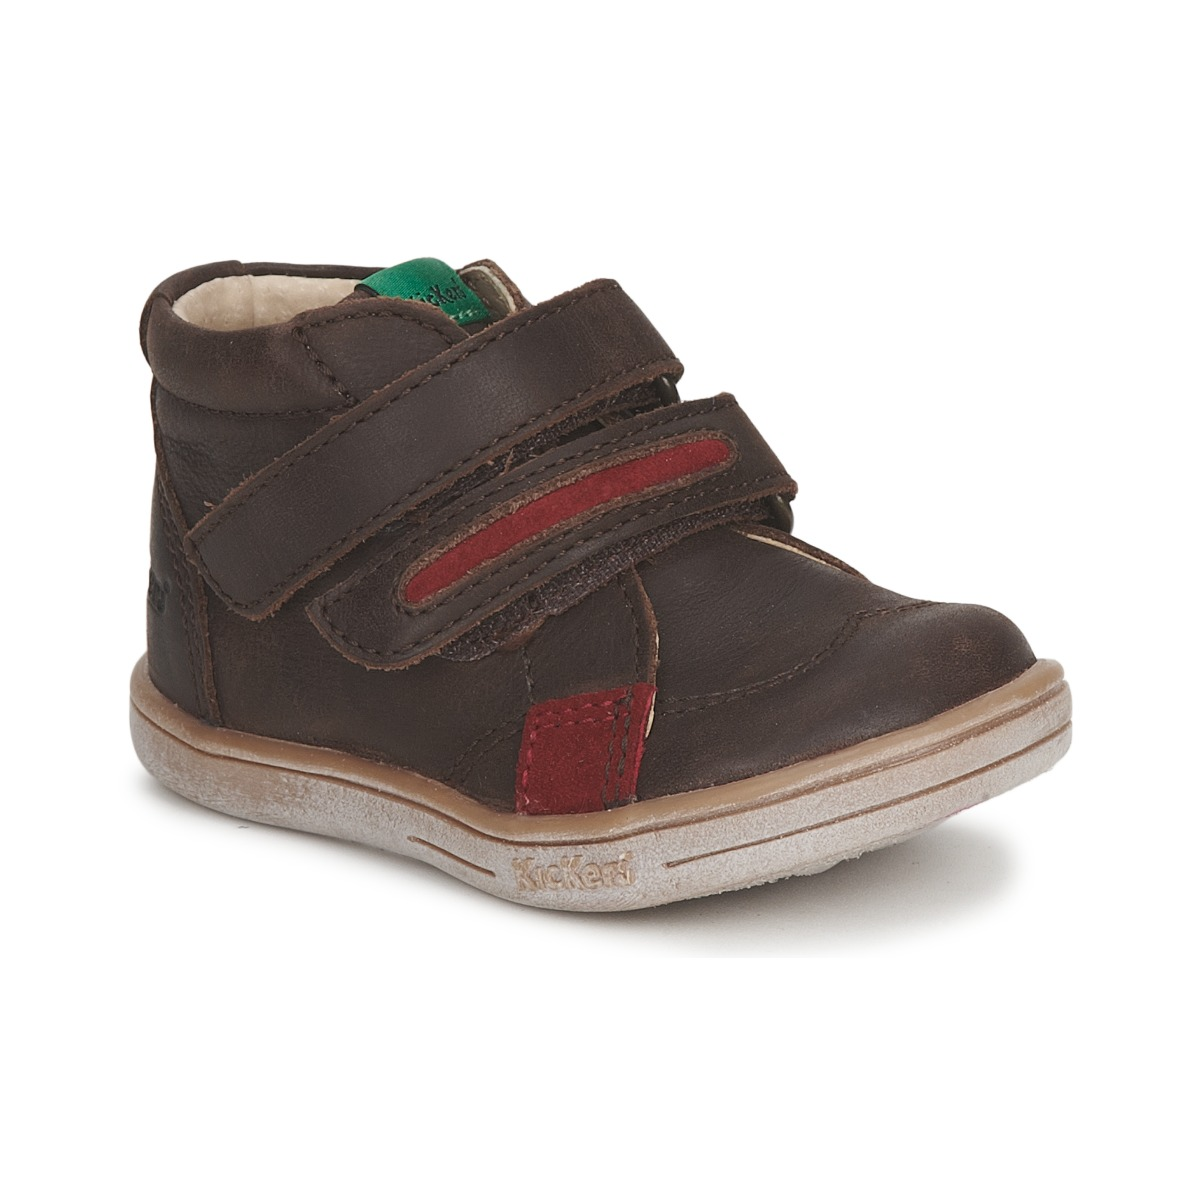 Kickers TAXI Marron / Rouge